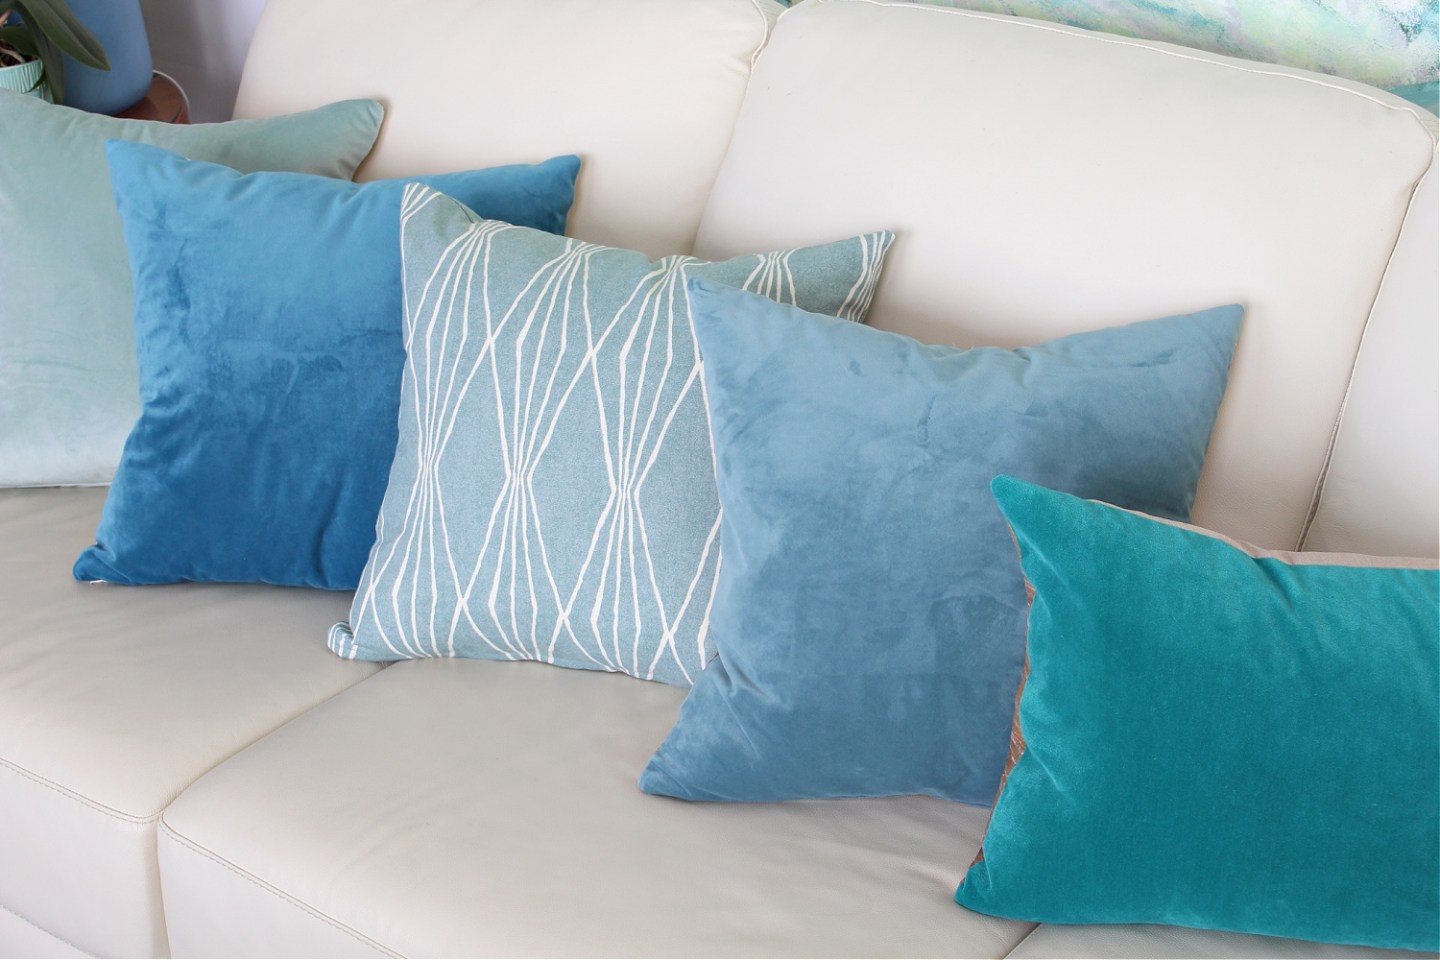 Mix of Aqua Throw Pillows